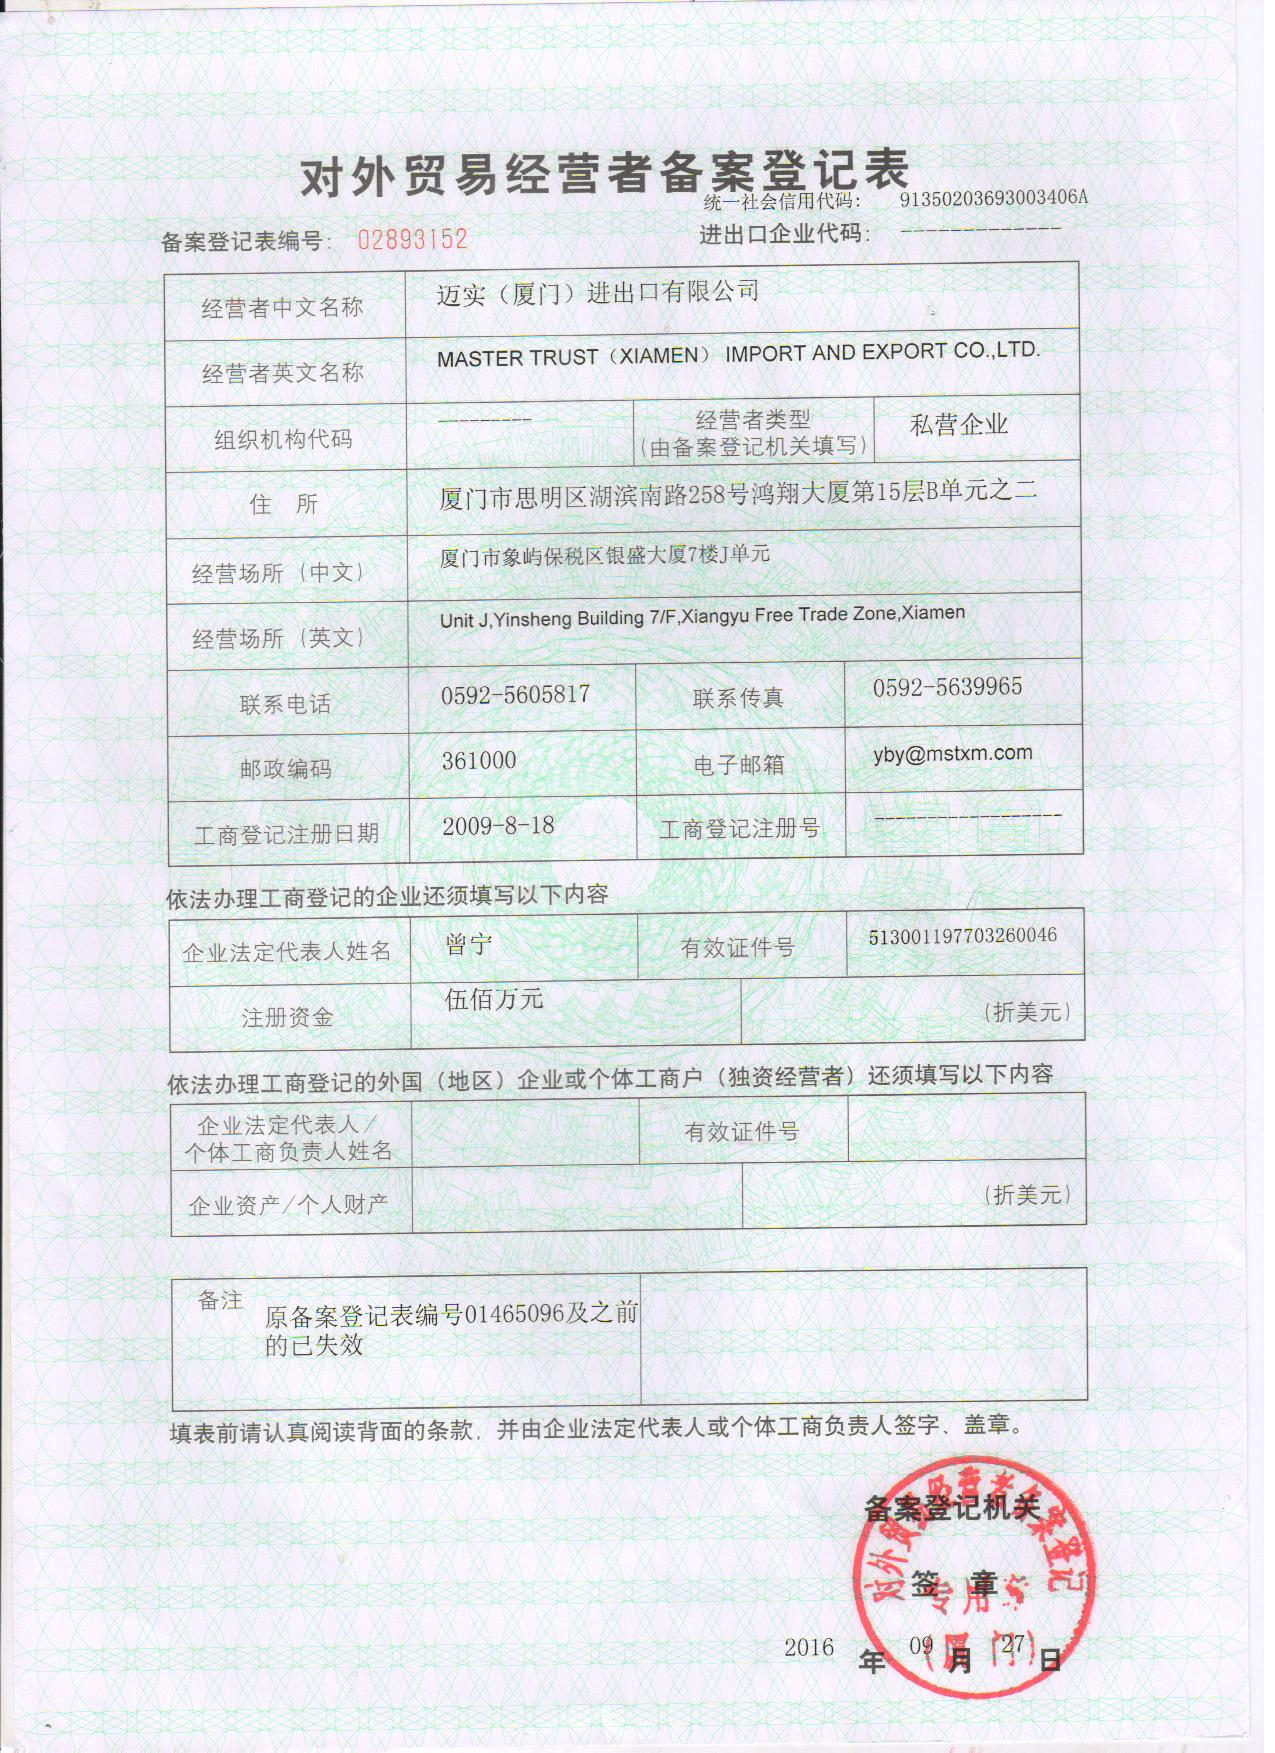 Foreign trade operators registration form